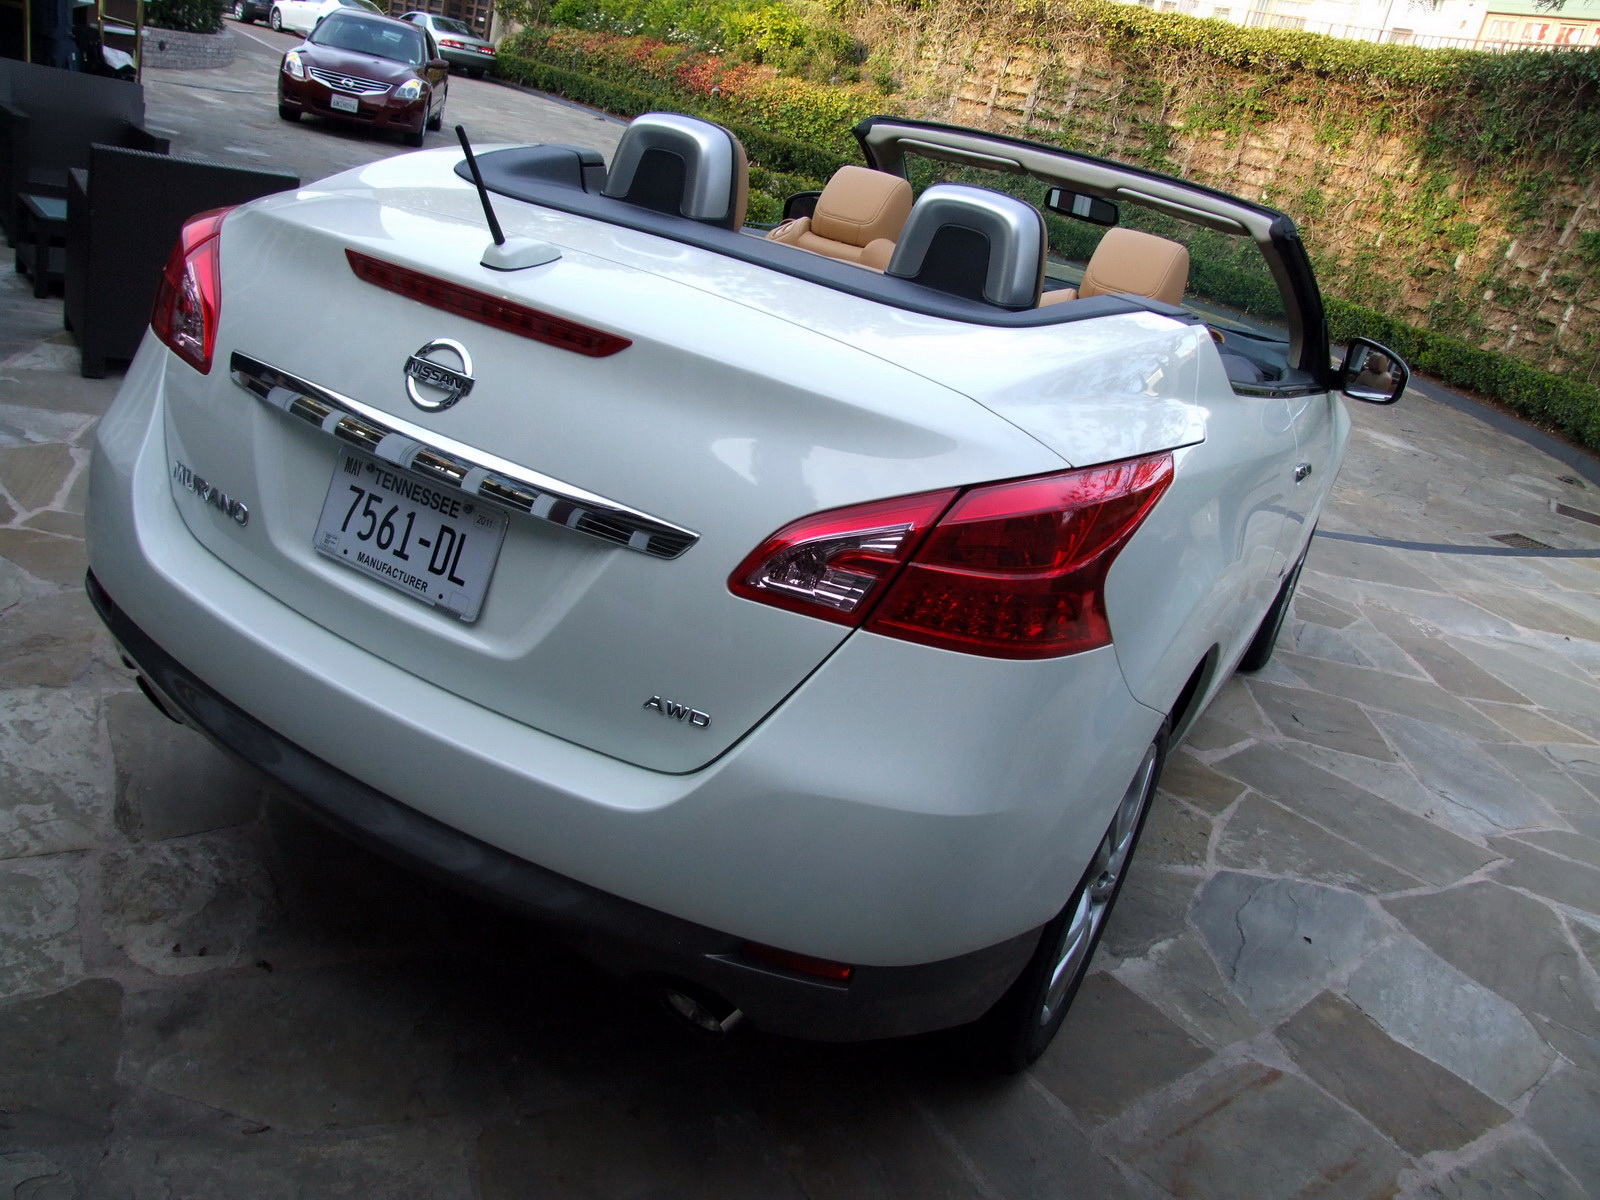 2010 - [Nissan] Murano CrossCabriolet - Page 4 2011-Nissan-Murano-CC-TD-626